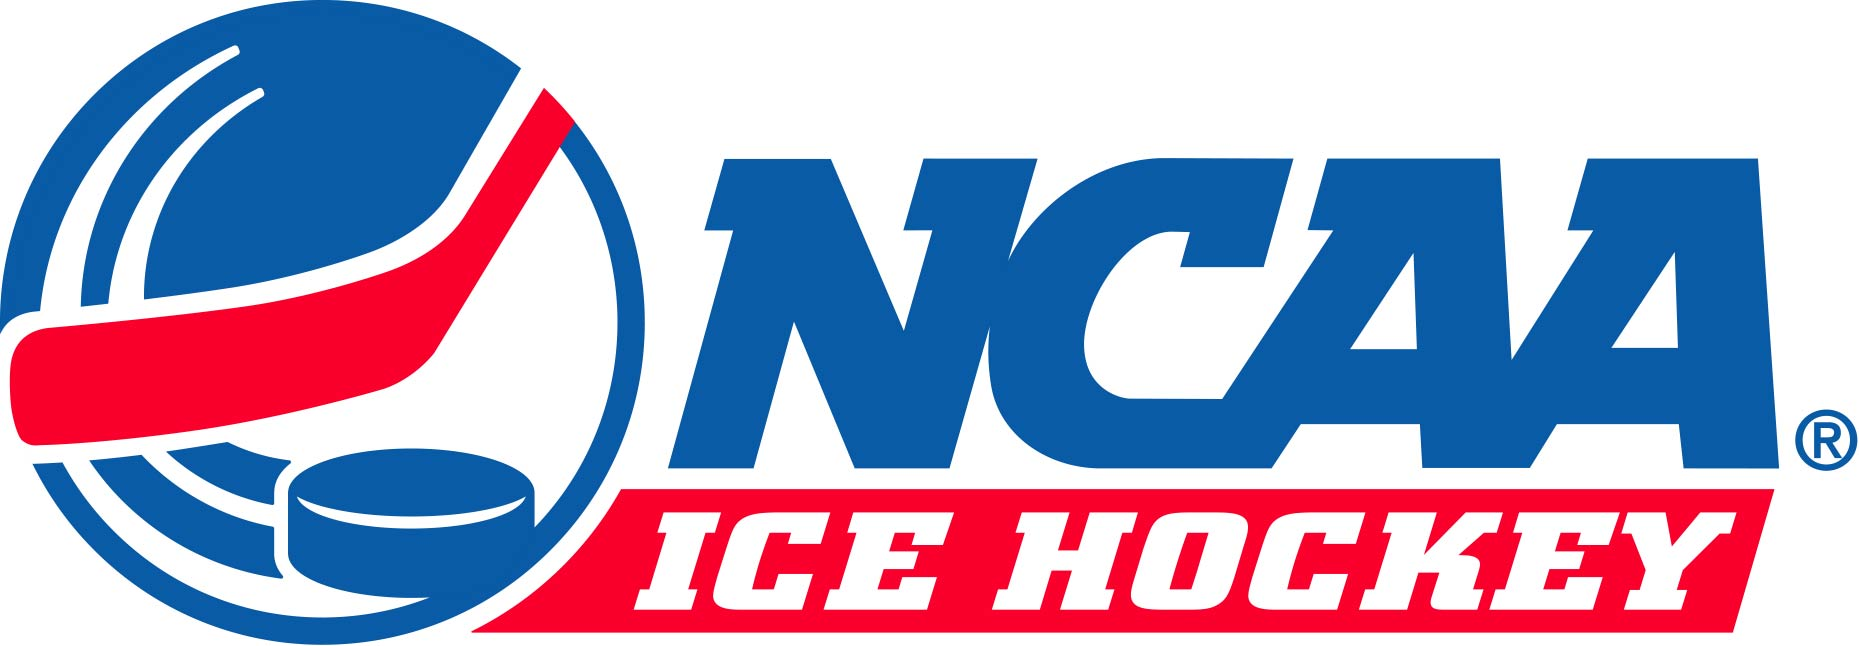 ncaahockey Catching the Torch: Kristo Takes the Lead